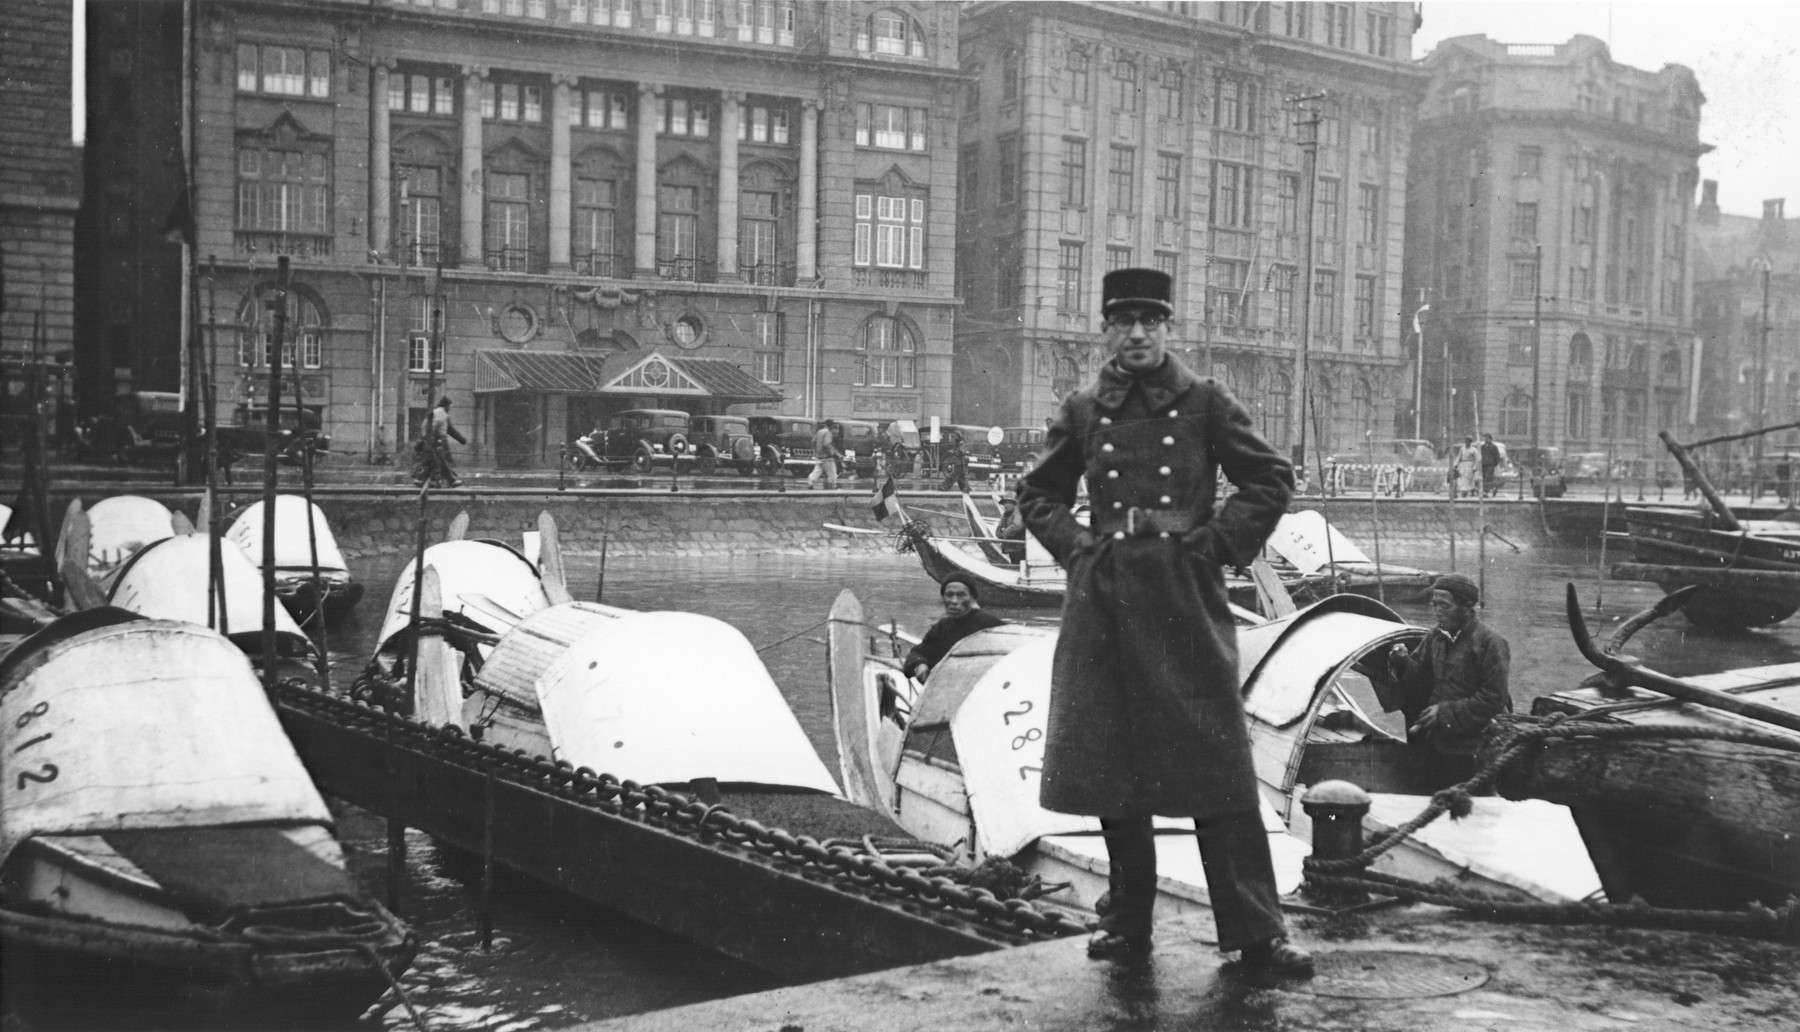 Mr. Frenkel, a Jewish soldier in the French army, poses next to small boats on a canal in Shanghai.